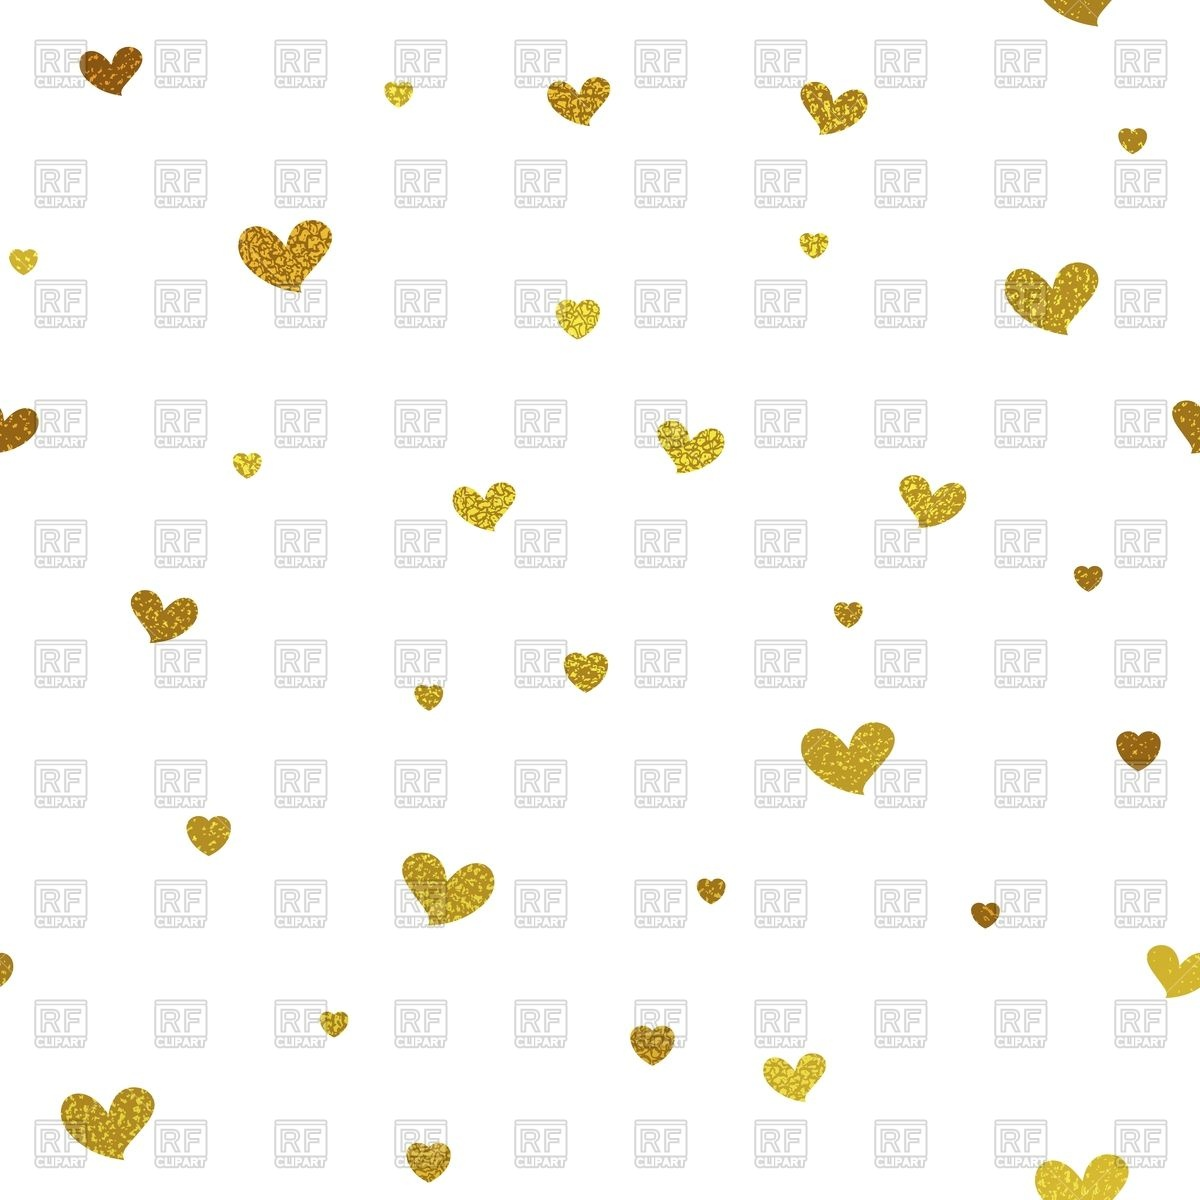 1200x1200 Gold Glitter Background With Hearts Vector Image Vector Artwork